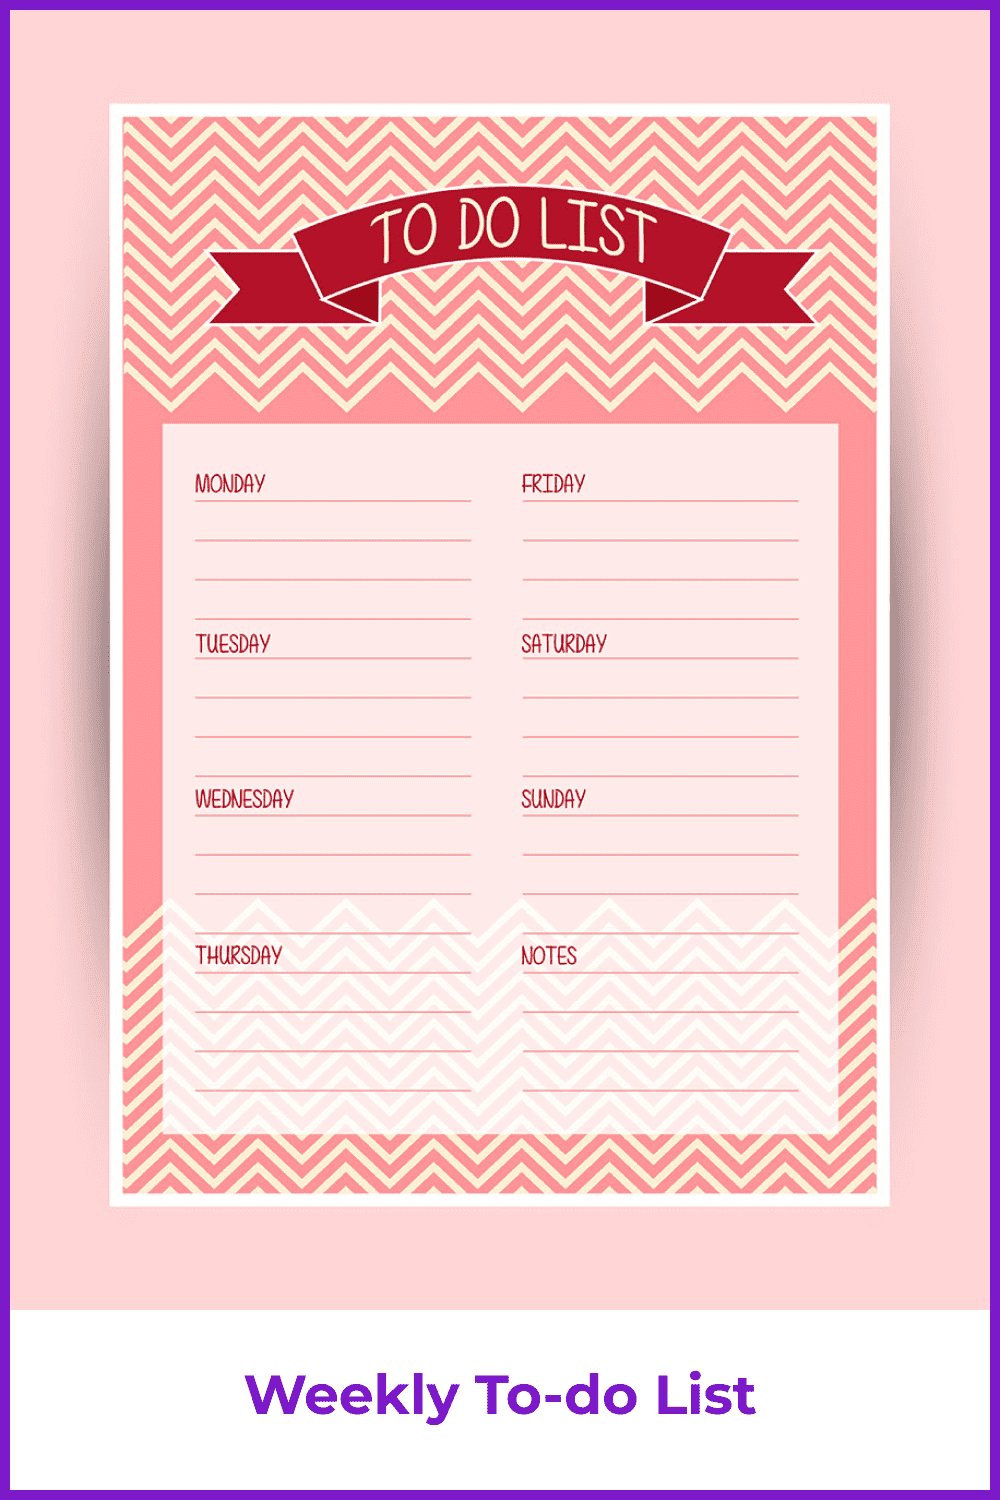 Planner in pink and red with geometric lines.